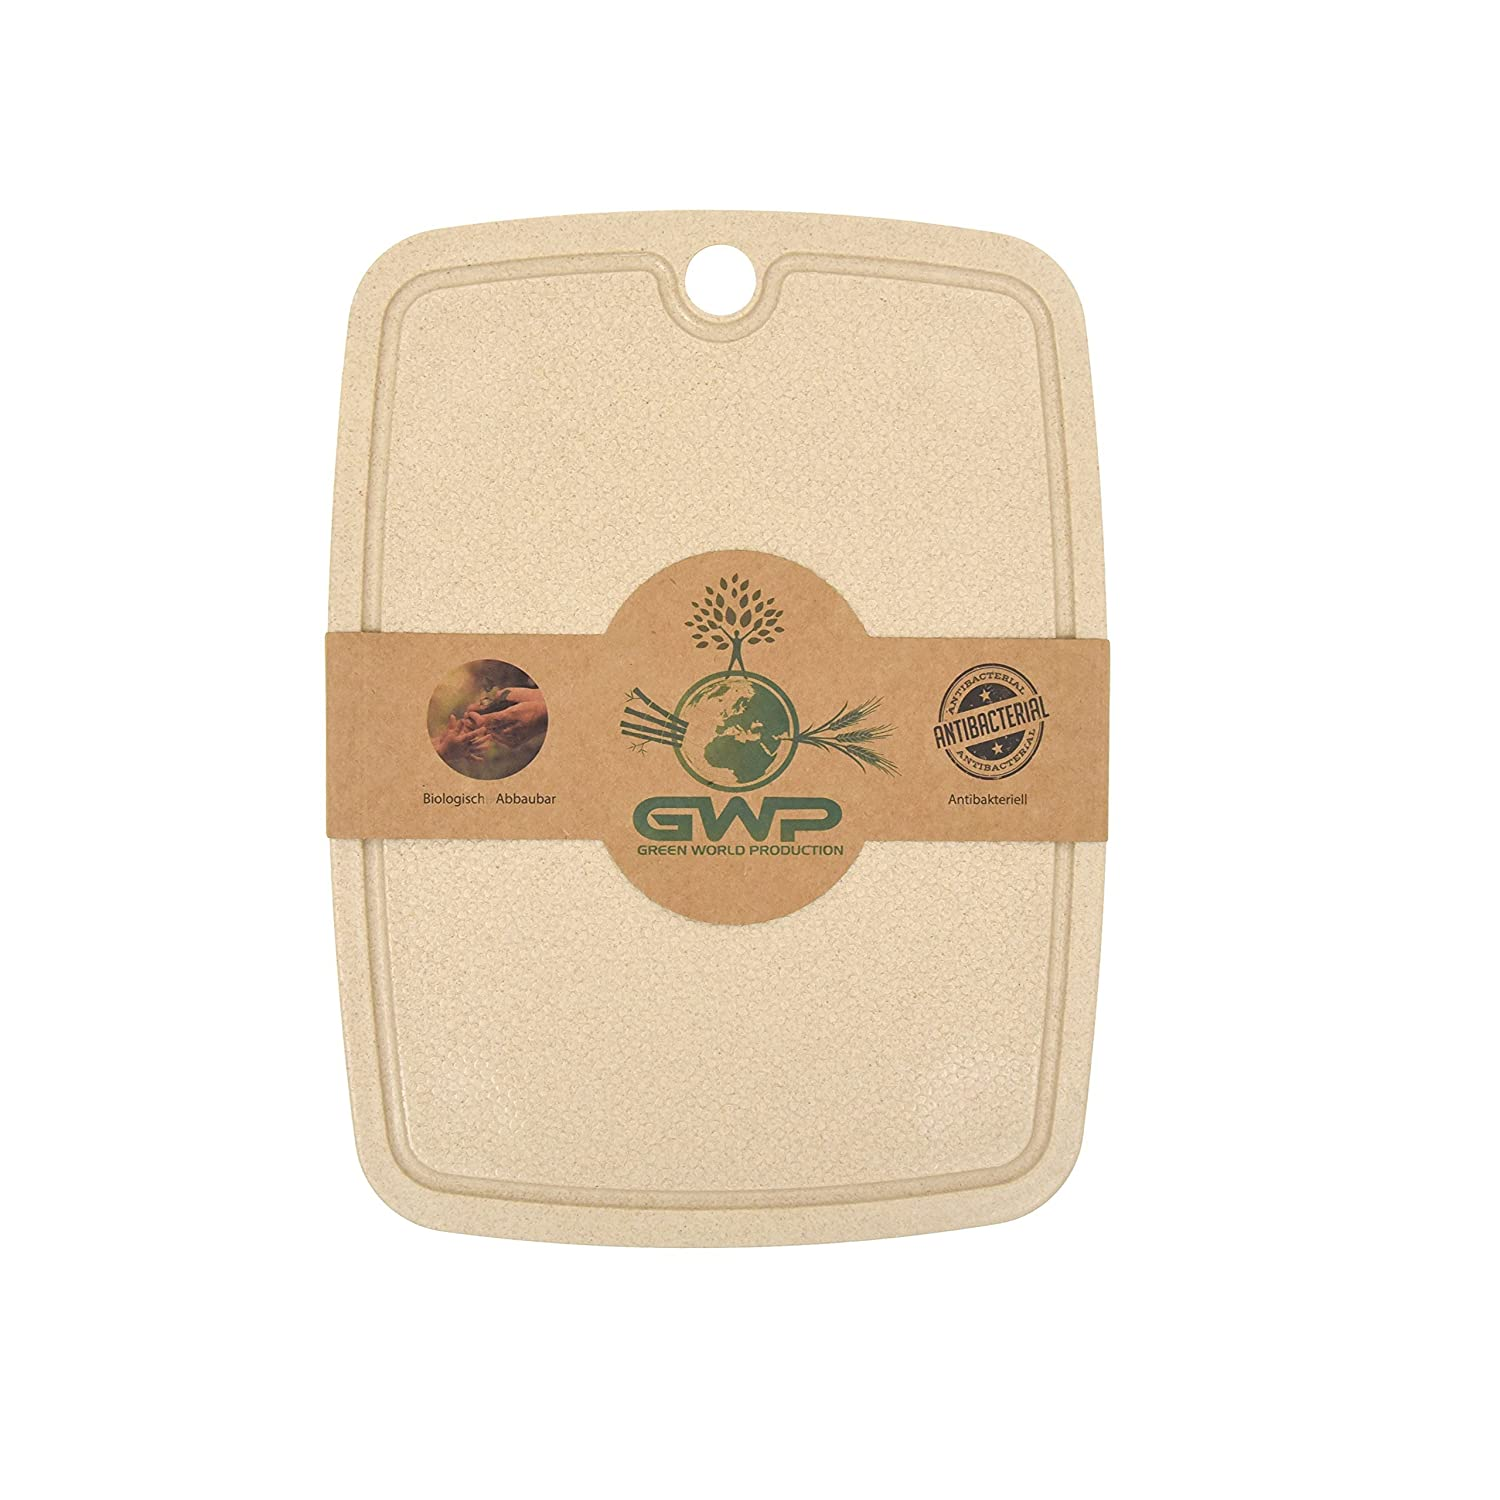 Green World production | 100% Organic | Anti-Bacterial Chopping Board and Carving Board with Juice Groove Kitchen Board Ideal for Cutting, Cooking, Baking | Chopping Board–Bread Board Serving Board with Non-Slip Feet Available in Various Sizes, 25x15 cm